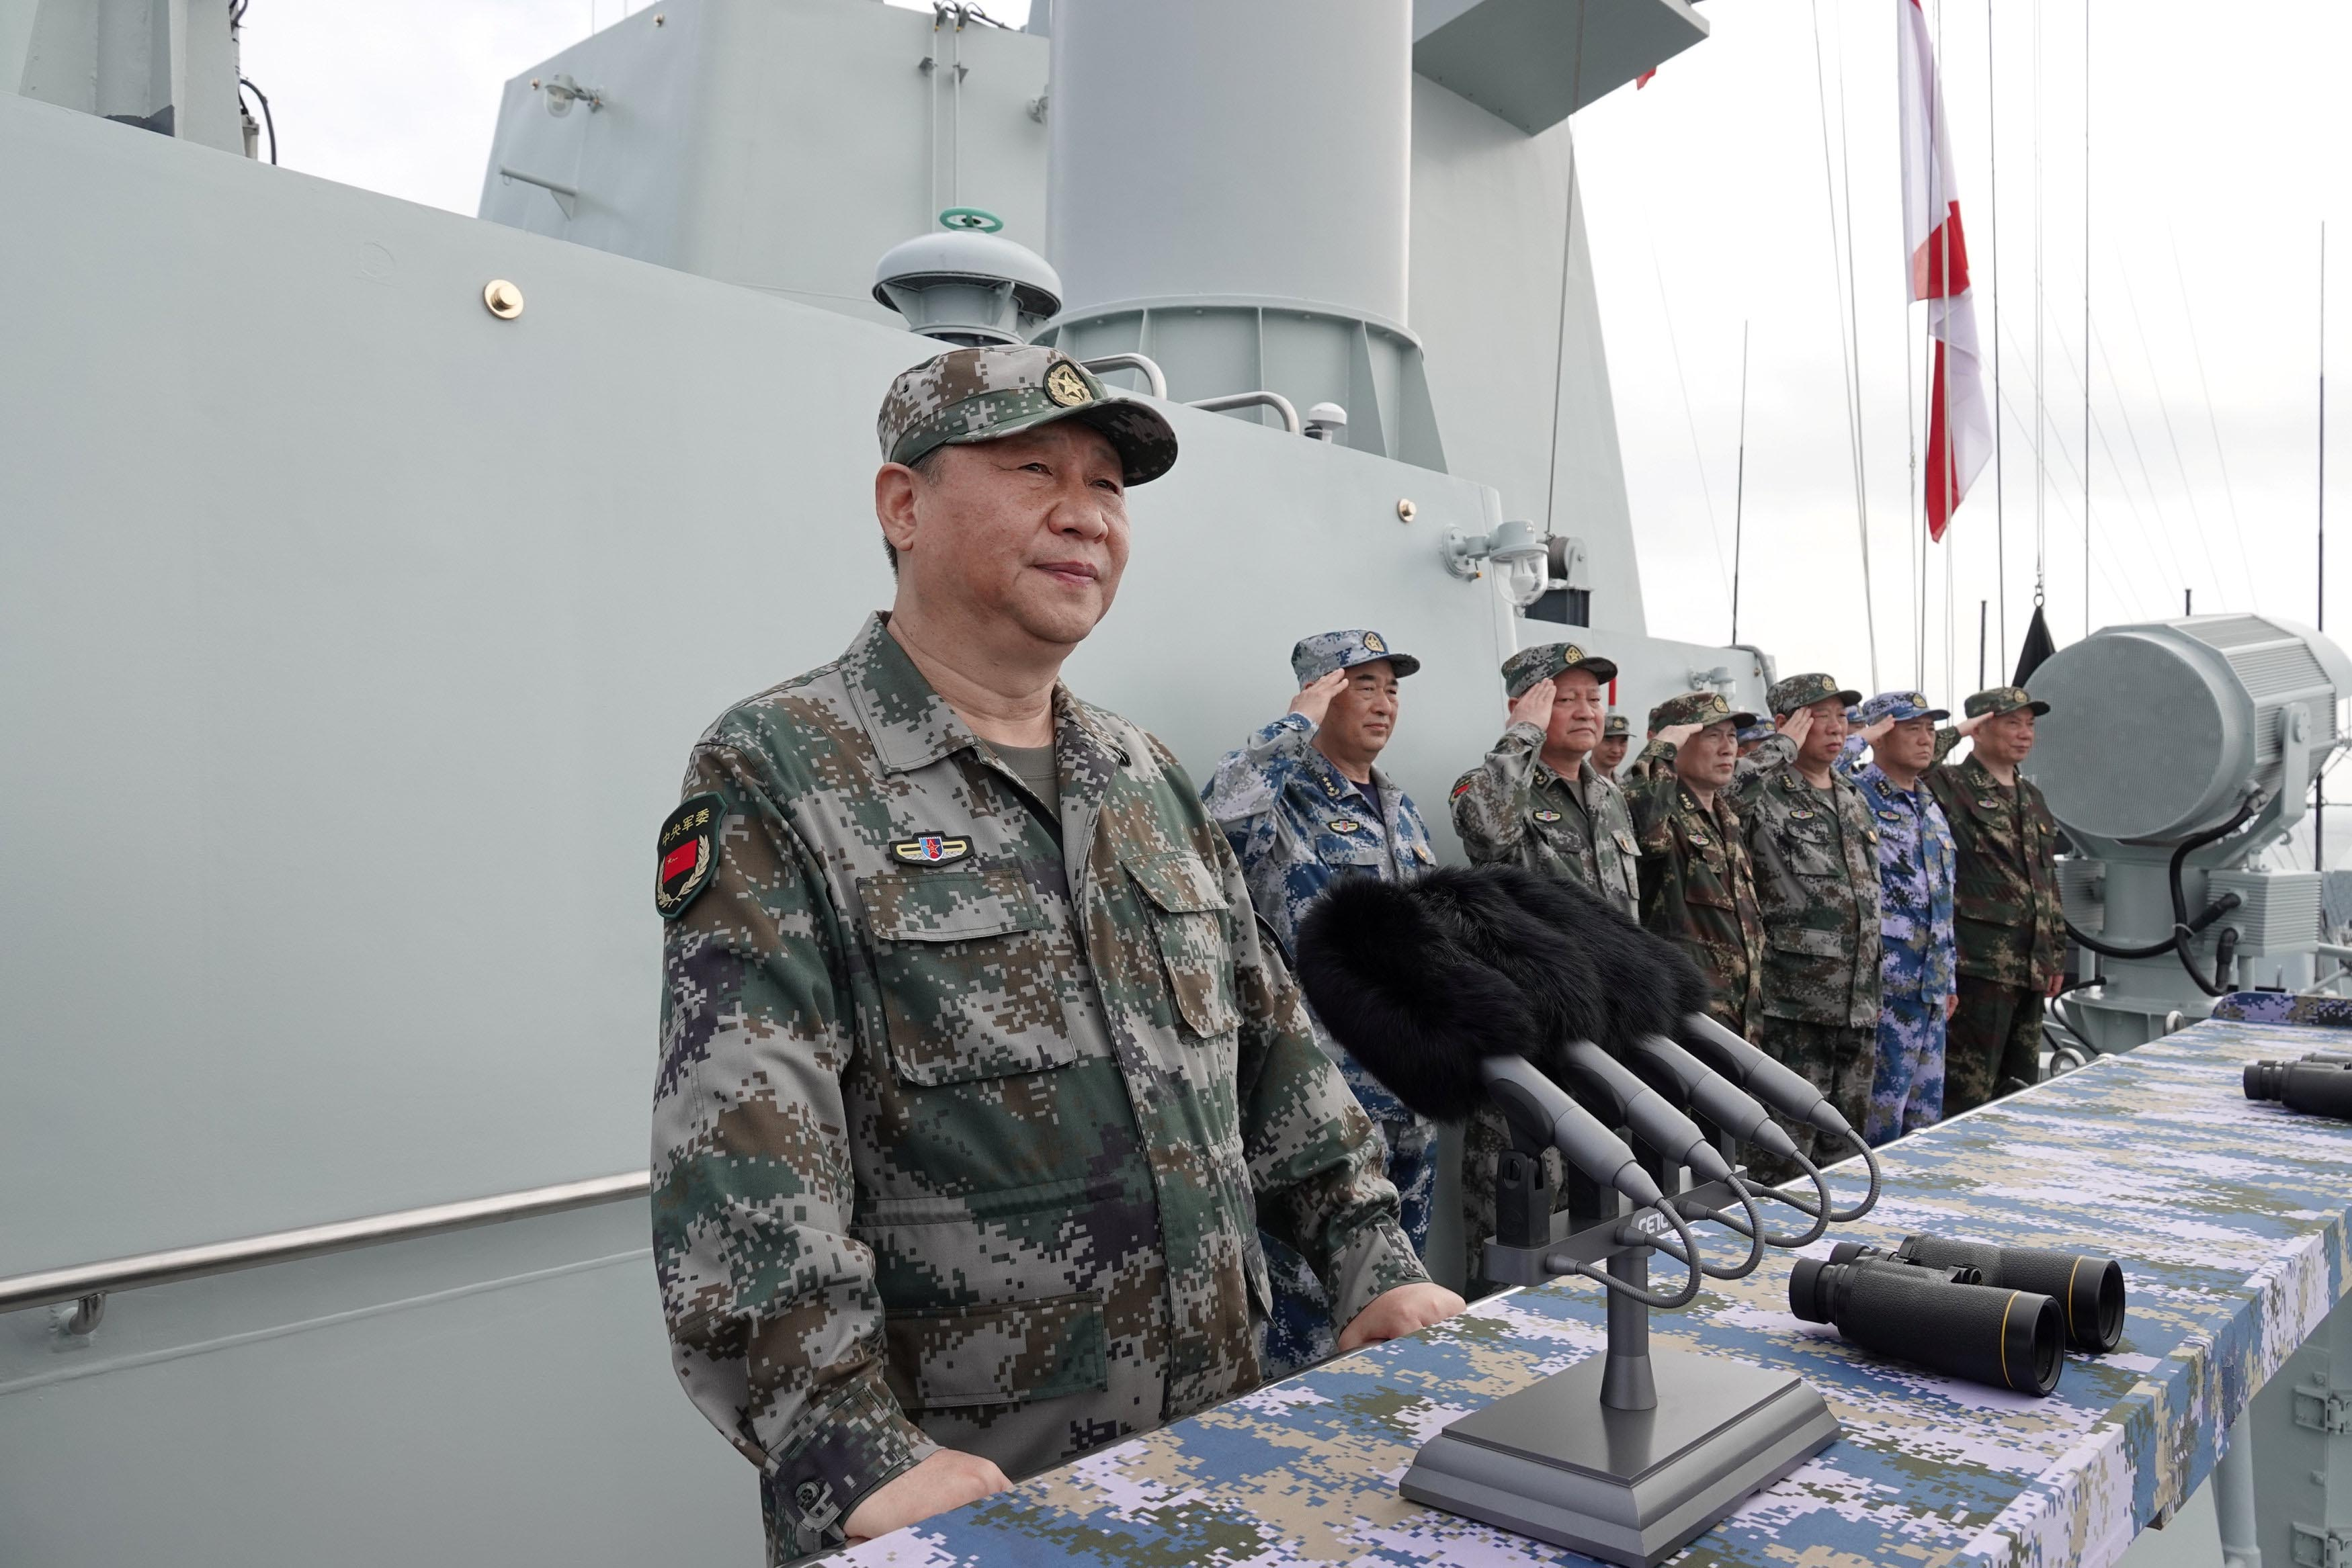 Chinese President Xi Jinping delivers a speech as he reviews a military display of Chinese People's Liberation Army (PLA) Navy in the South China Sea April 12, 2018. Photo: Li Gang/Xinhua via Reuters